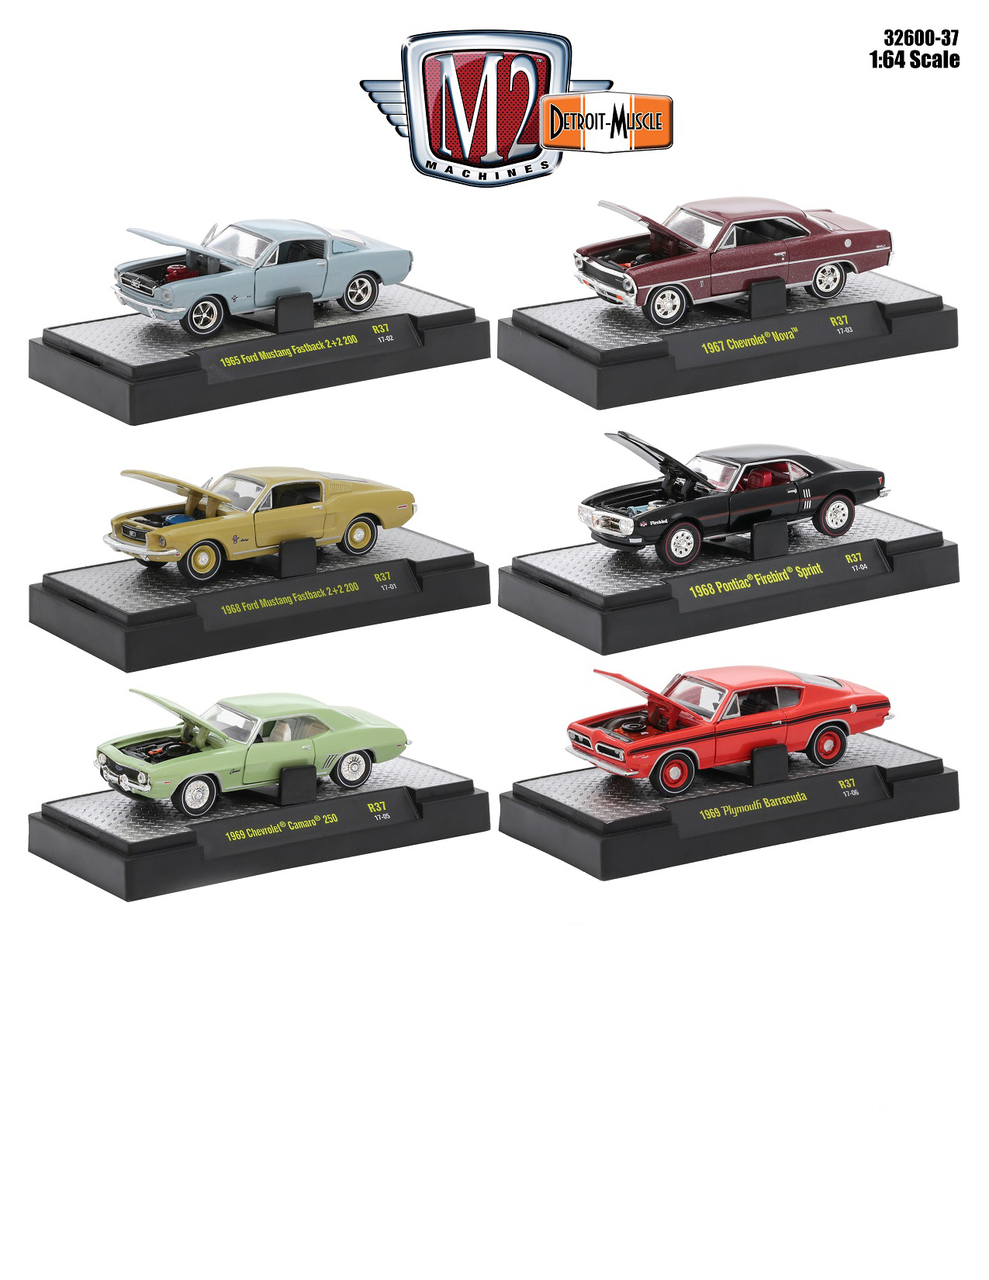 Detroit Muscle 6 Cars Set Release 37 IN DISPLAY CASES 1/64 Diecast Model Cars by M2 Machines 32600-37